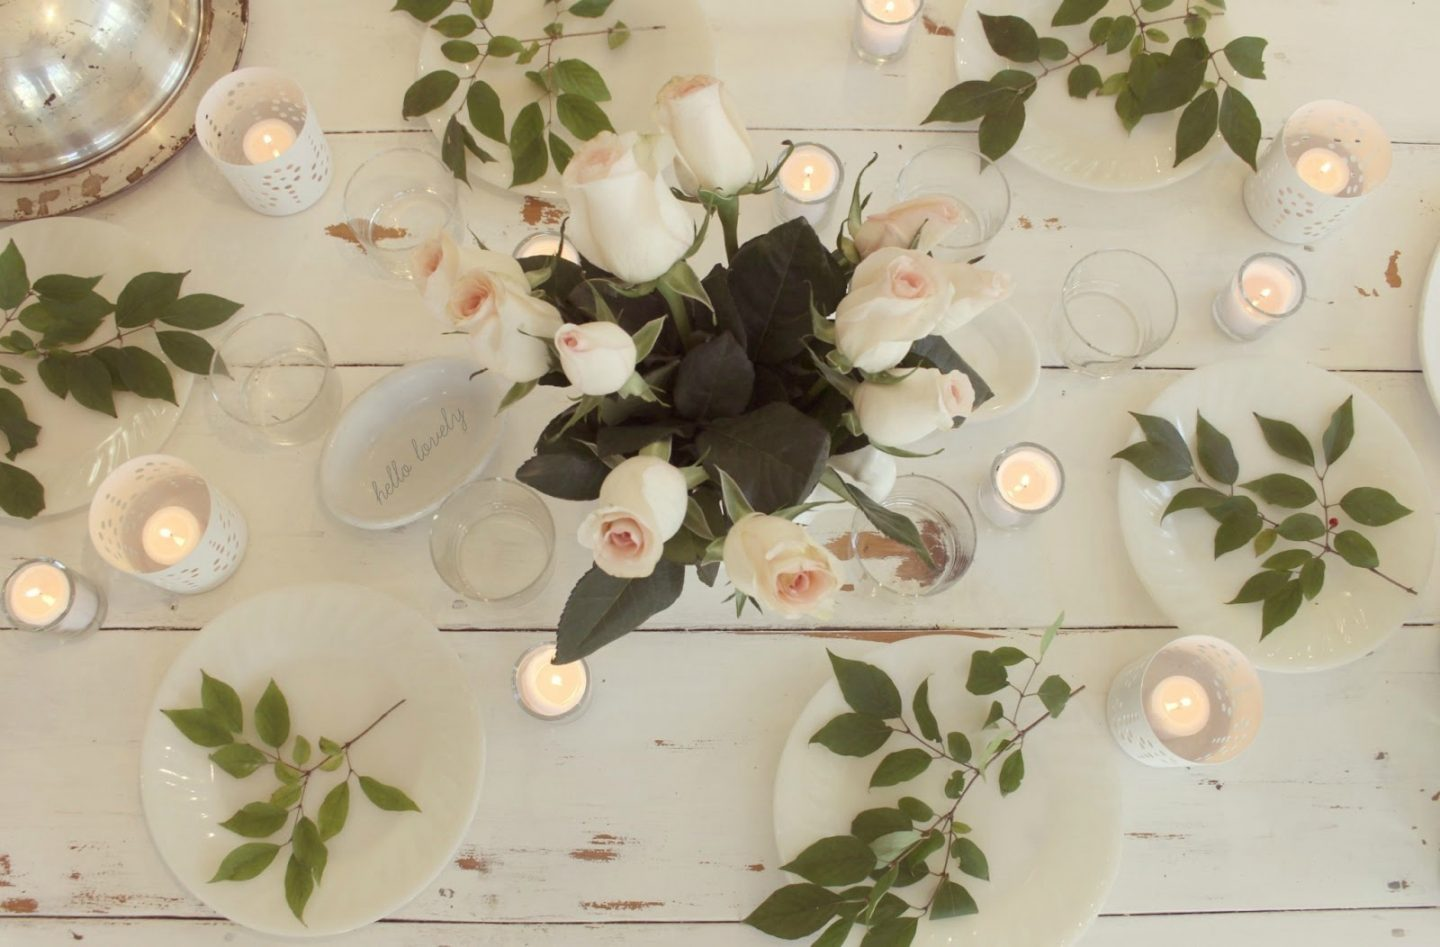 Candlelight, blush roses, and fresh greenery on a distressed white farm table with design by Hello Lovely Studio. #farmtable #farmhouse style #shabbychic #hellolovelystudio